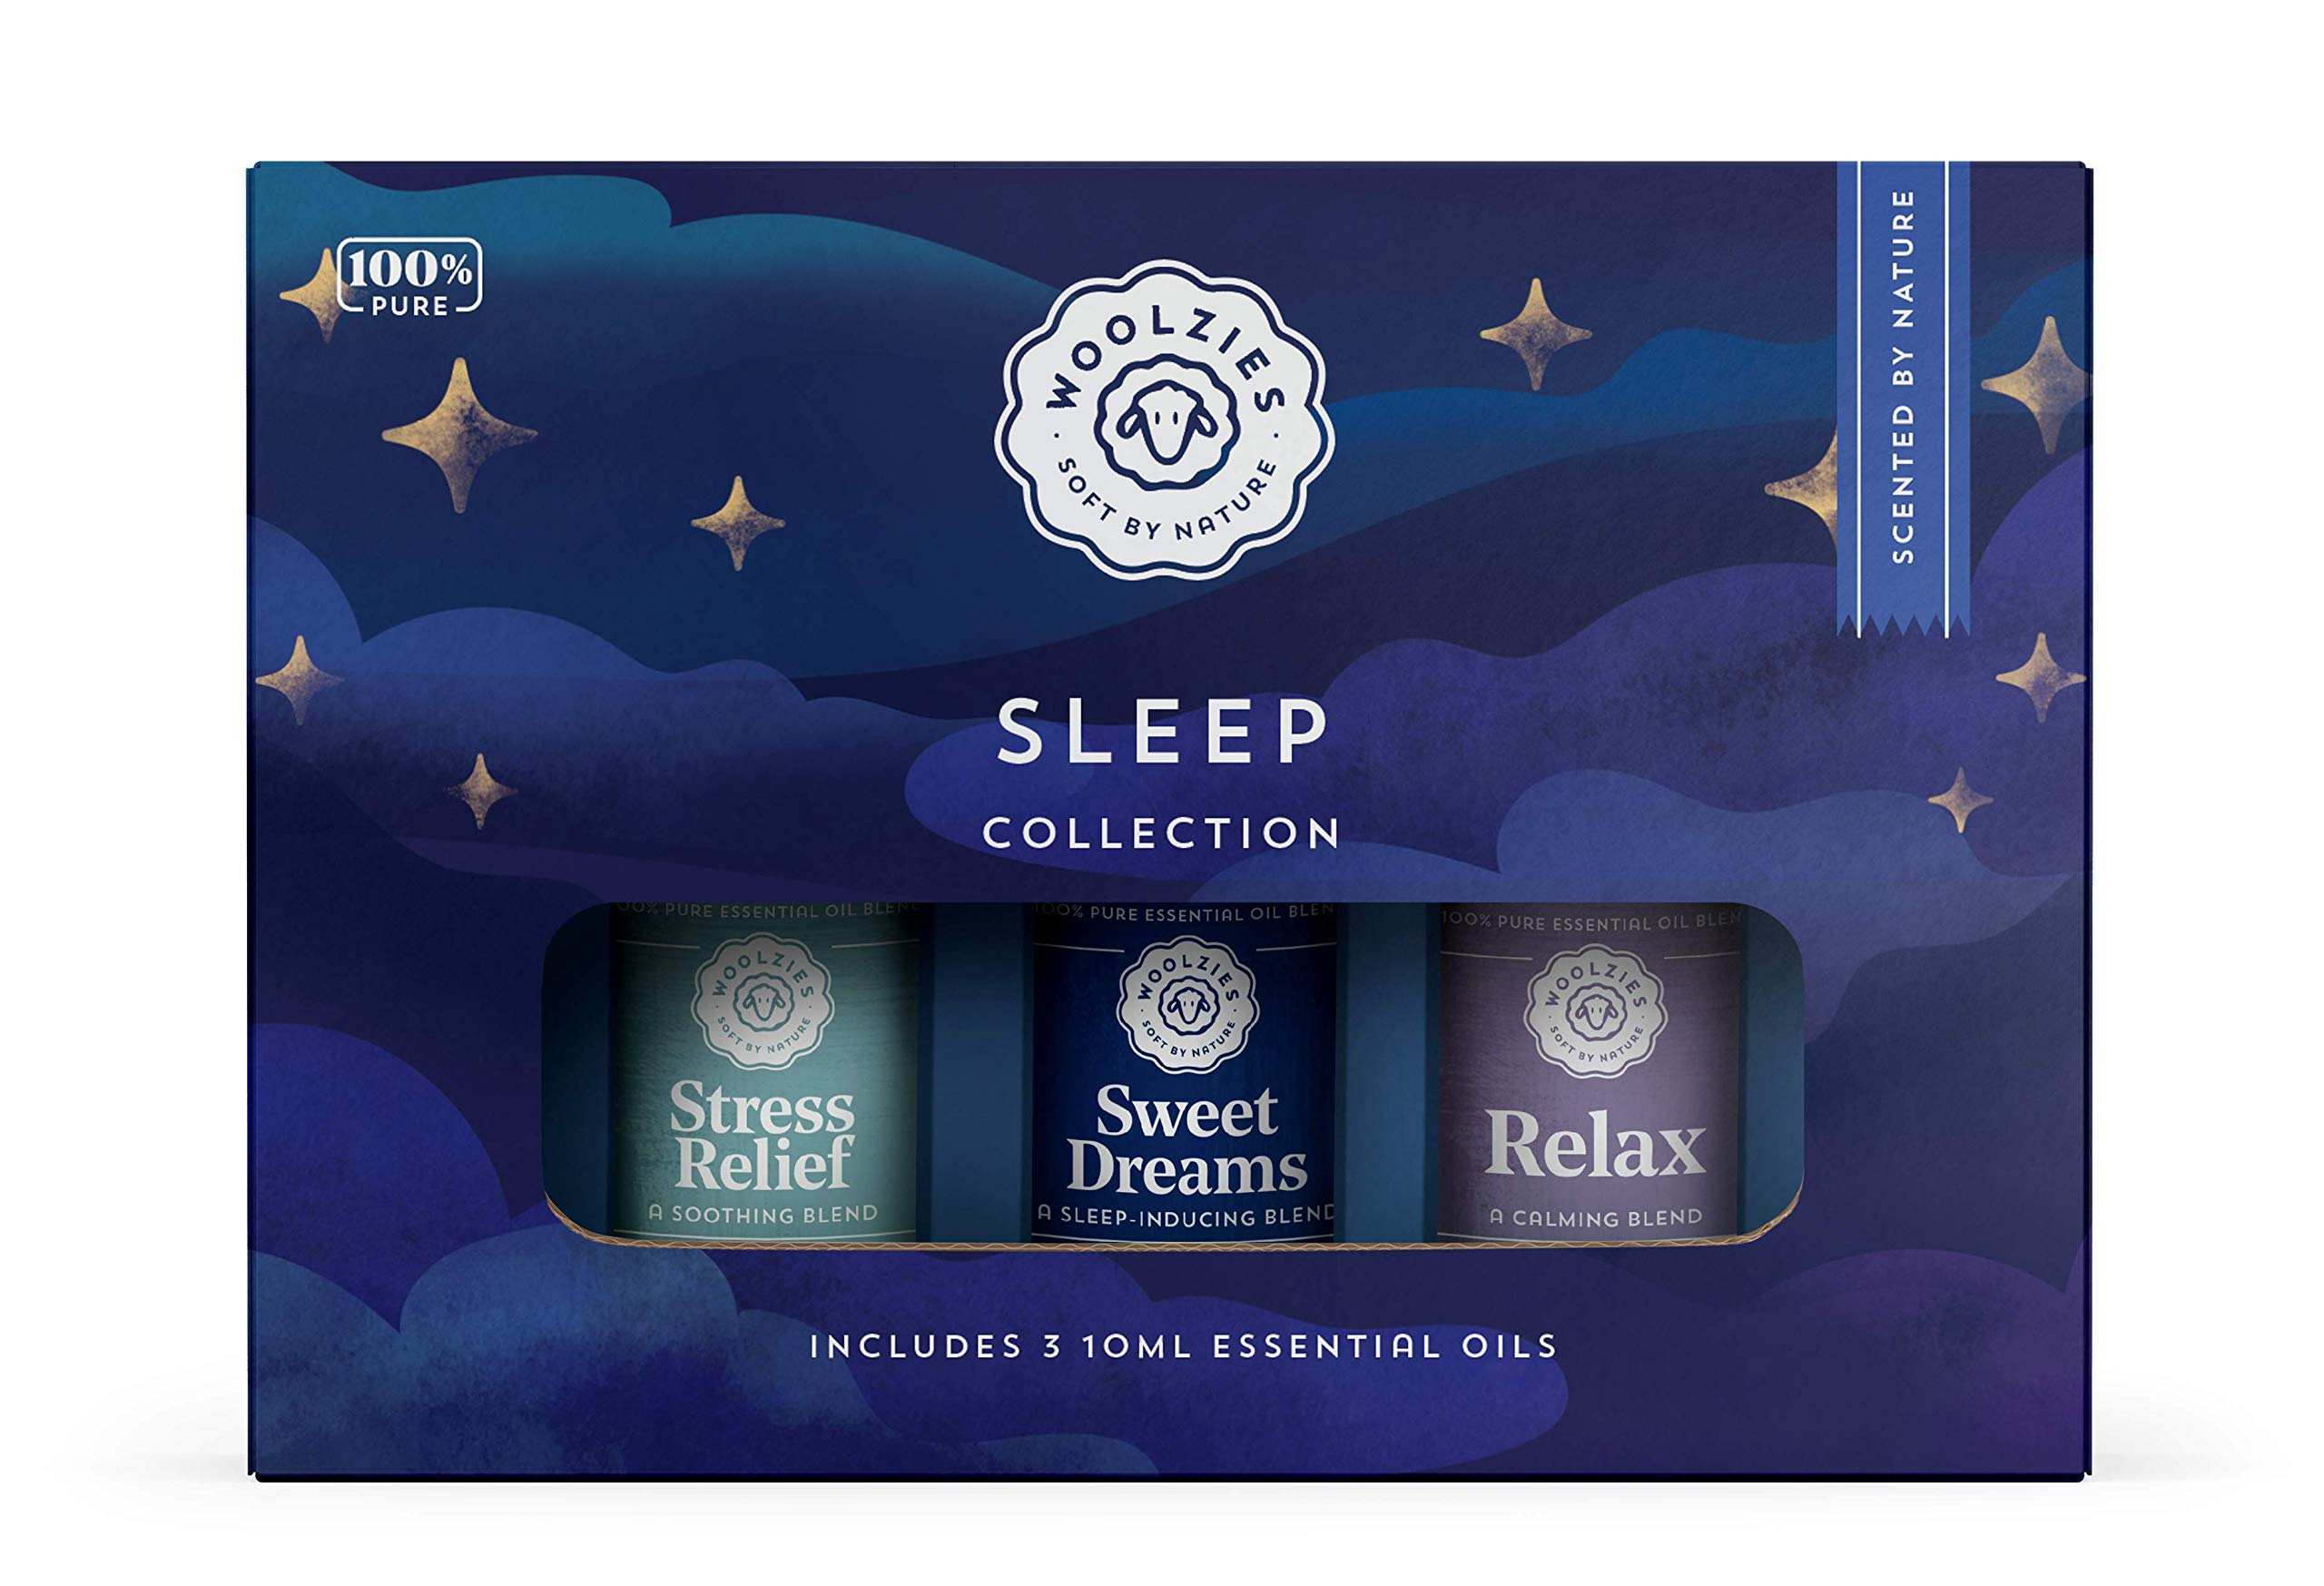 Woolzies Sleep Collection Essential Oil Blend Set | Incl. Sweet Dreams, Relax, & Stress Relief Oils | Helps Sleeping Faster, Better & Restful| Natural Sleeping Aid |Reliefs Stress